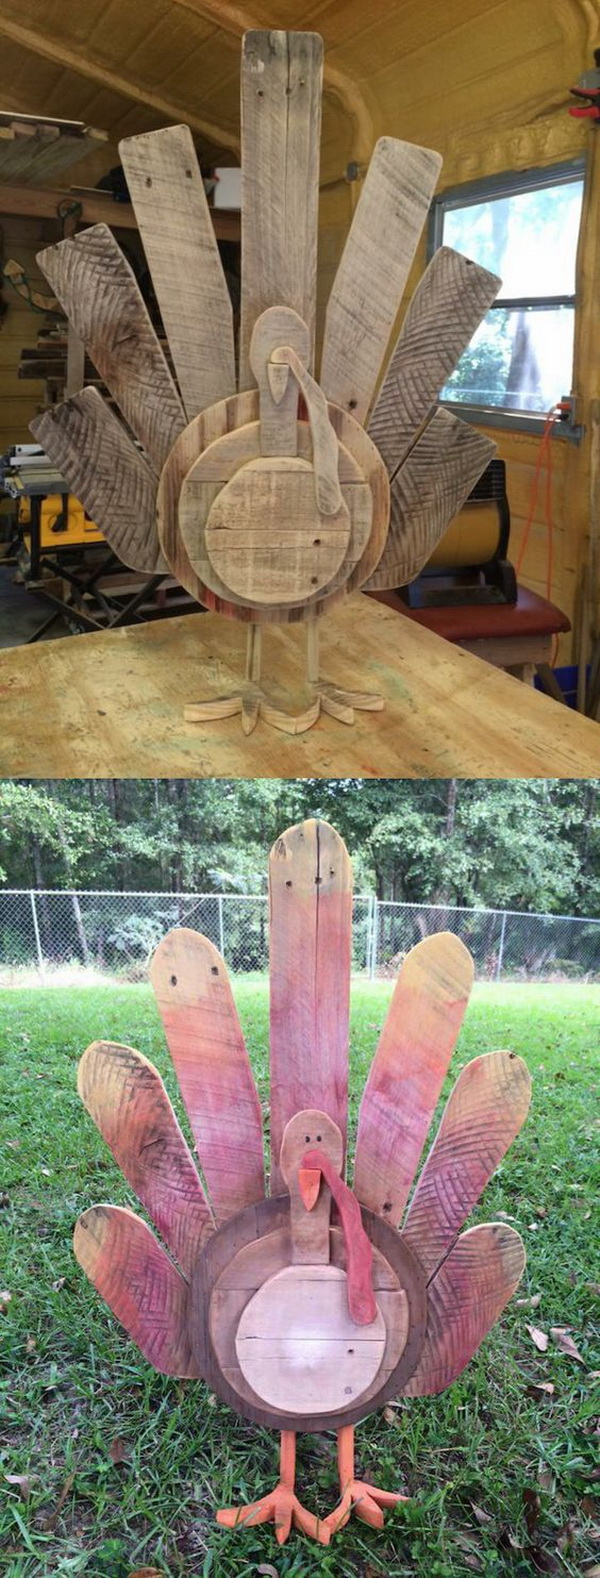 DIY Thanksgiving Turkey Decor. Make a wooden turkey for your thanksgiving decor out of reclaimed wood pallets. What you need are just some wood pallets and a bit of woodworking skills.